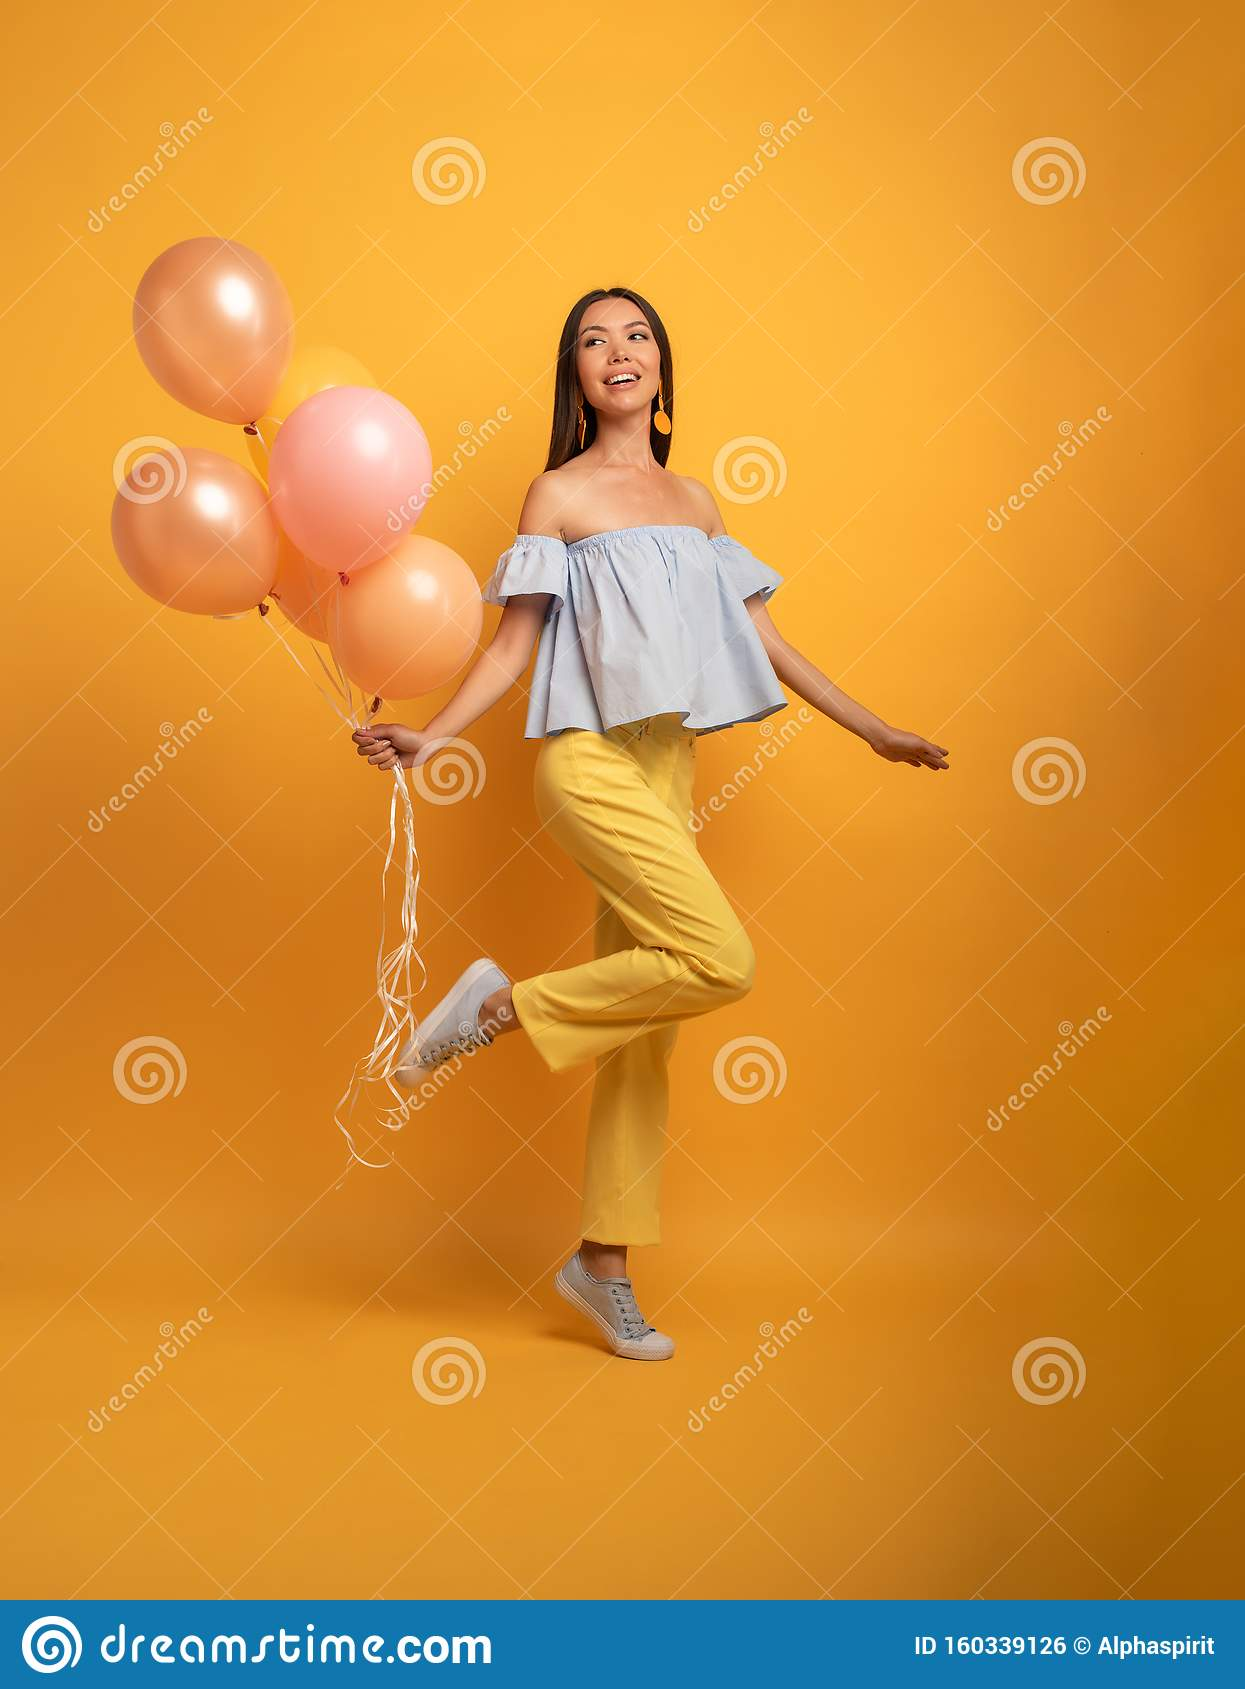 Girl ready for a party with balloon. Joyful an happiness expression. Yellow background